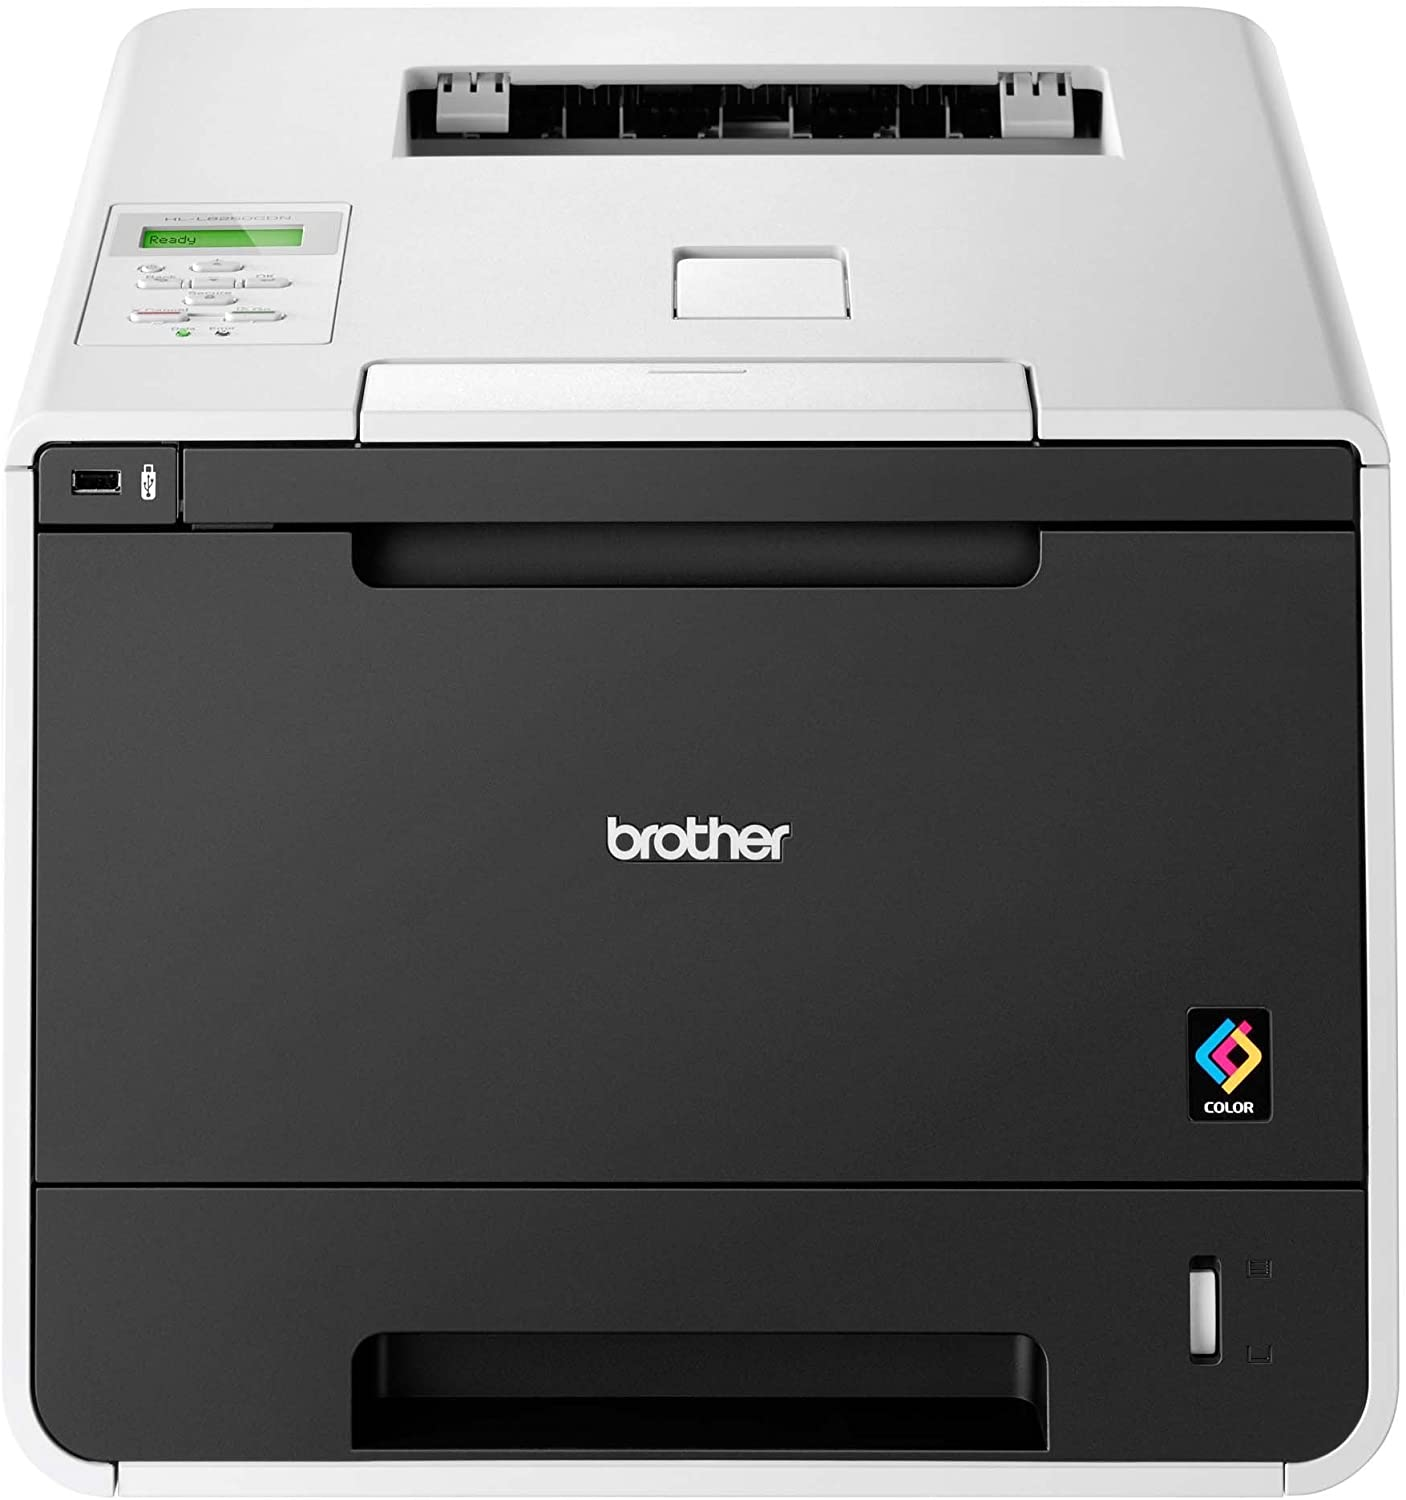 Brother Printer HLL8250CDN Color Printer with Networking and Duplex Printing, Amazon Dash Replenishment Enabled